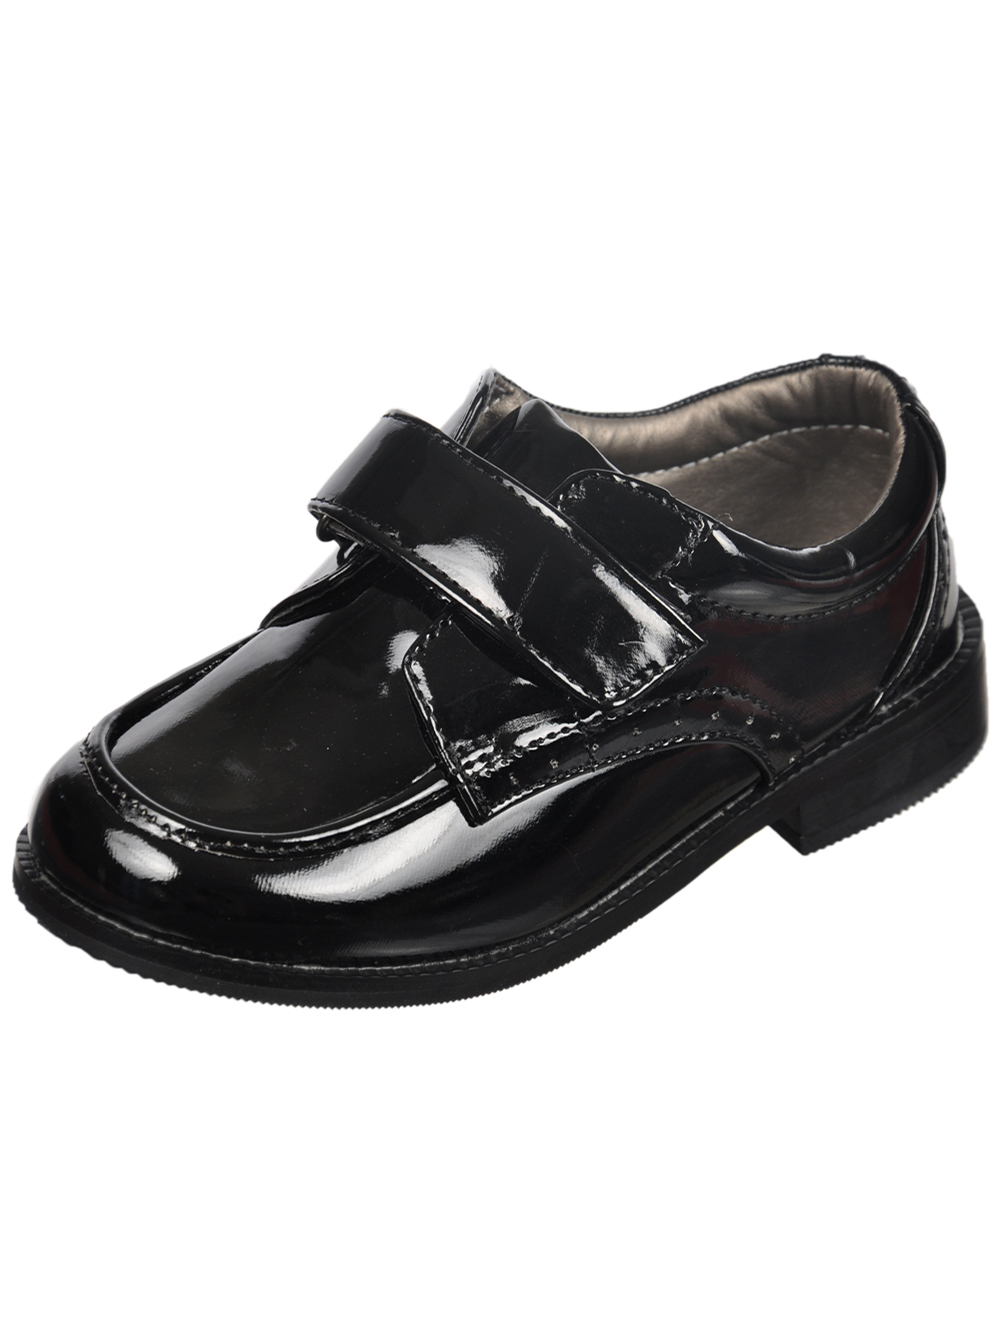 "Josmo ""Oreille"" Brogue Dress Shoes (Toddler Boys Sizes 5 12) by Josmo"